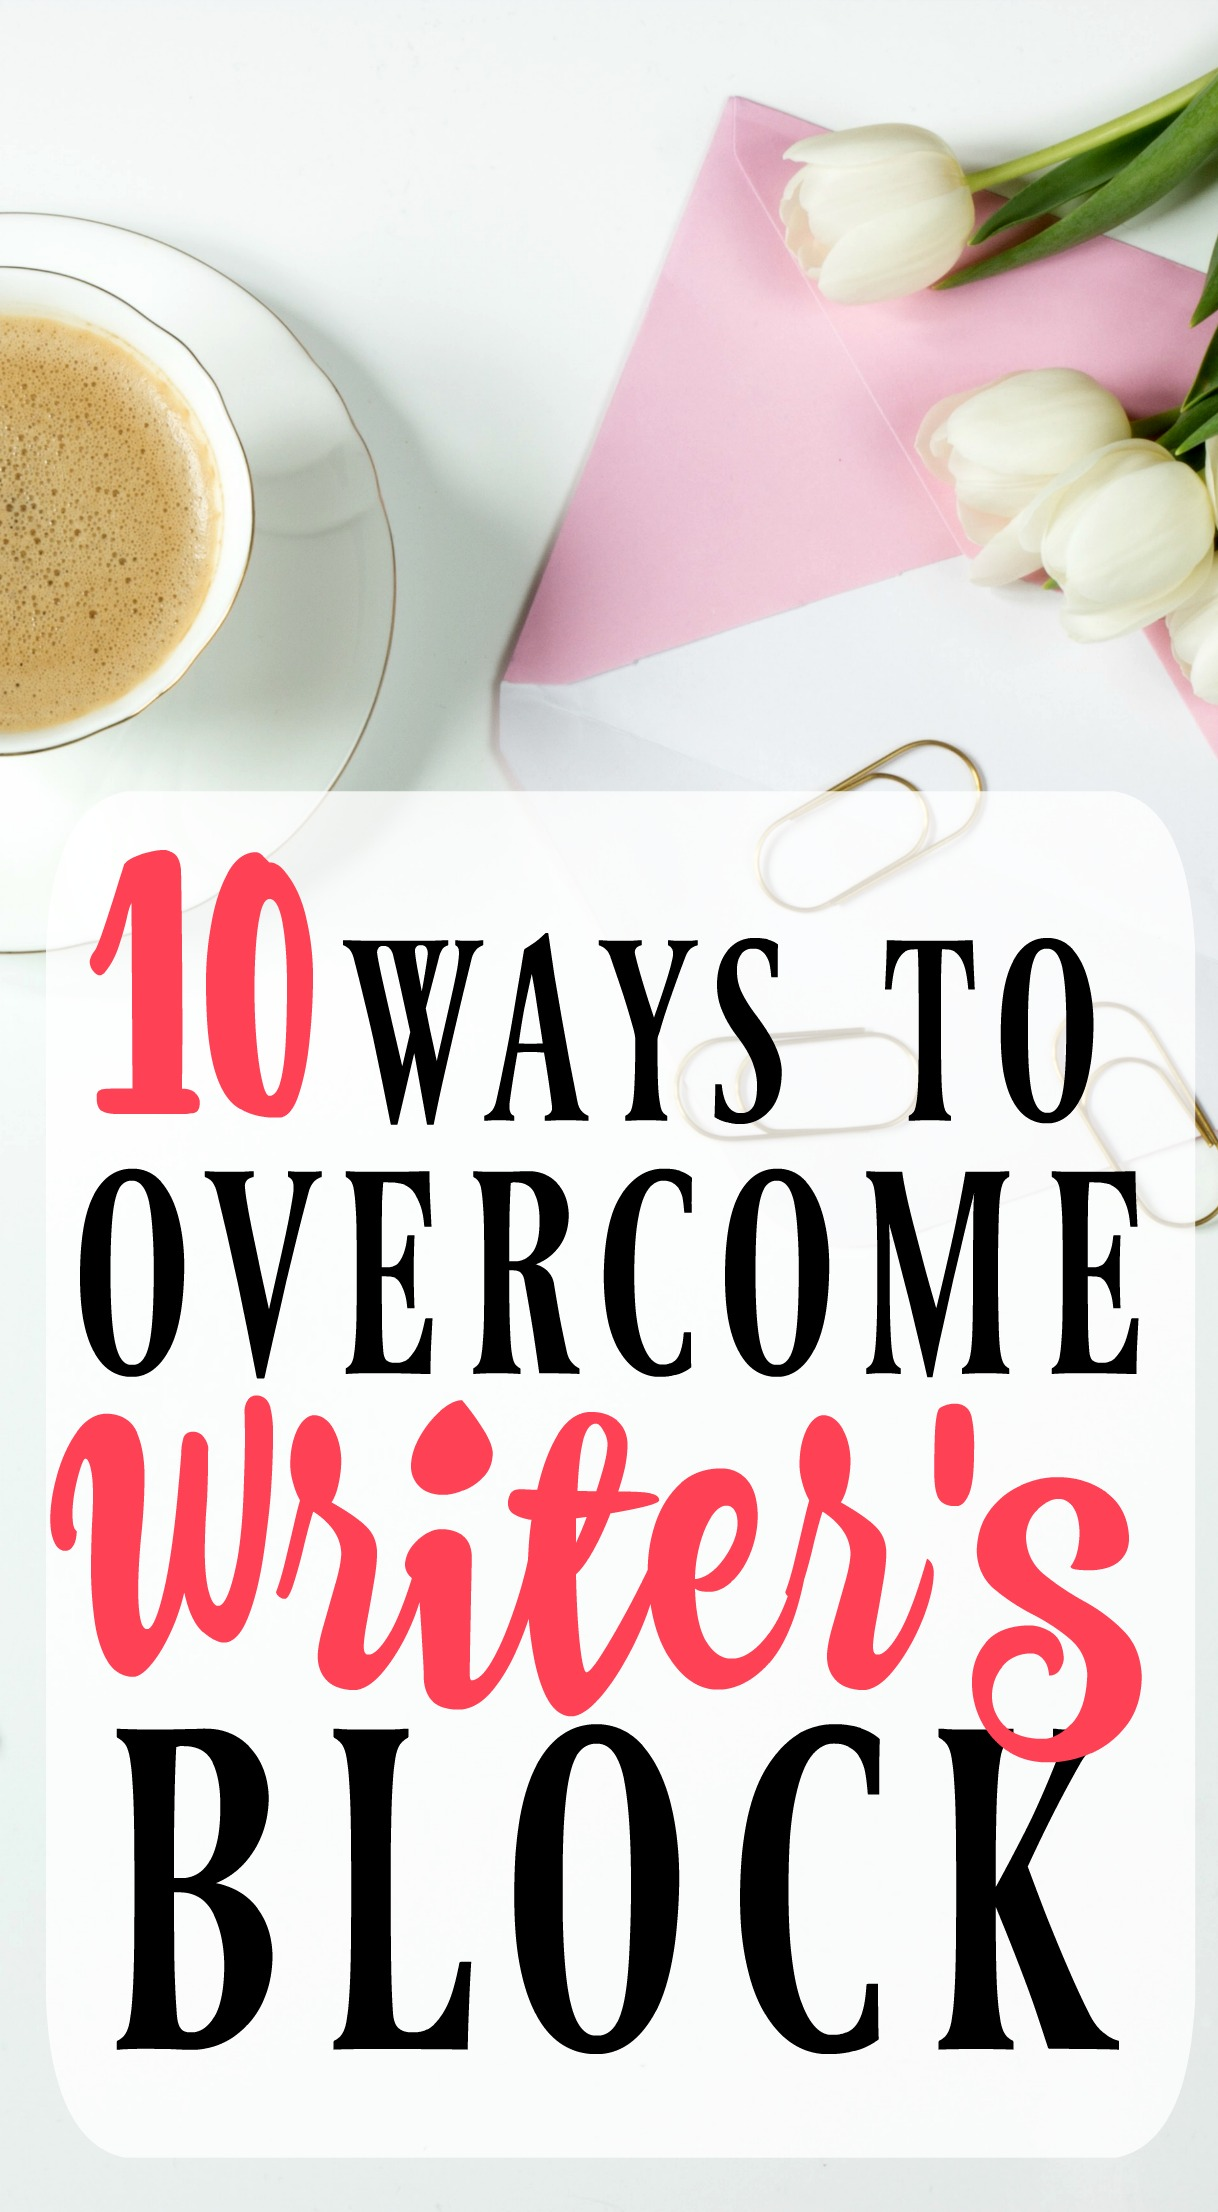 These tips will help to fight writer's block and let you get more writing done!